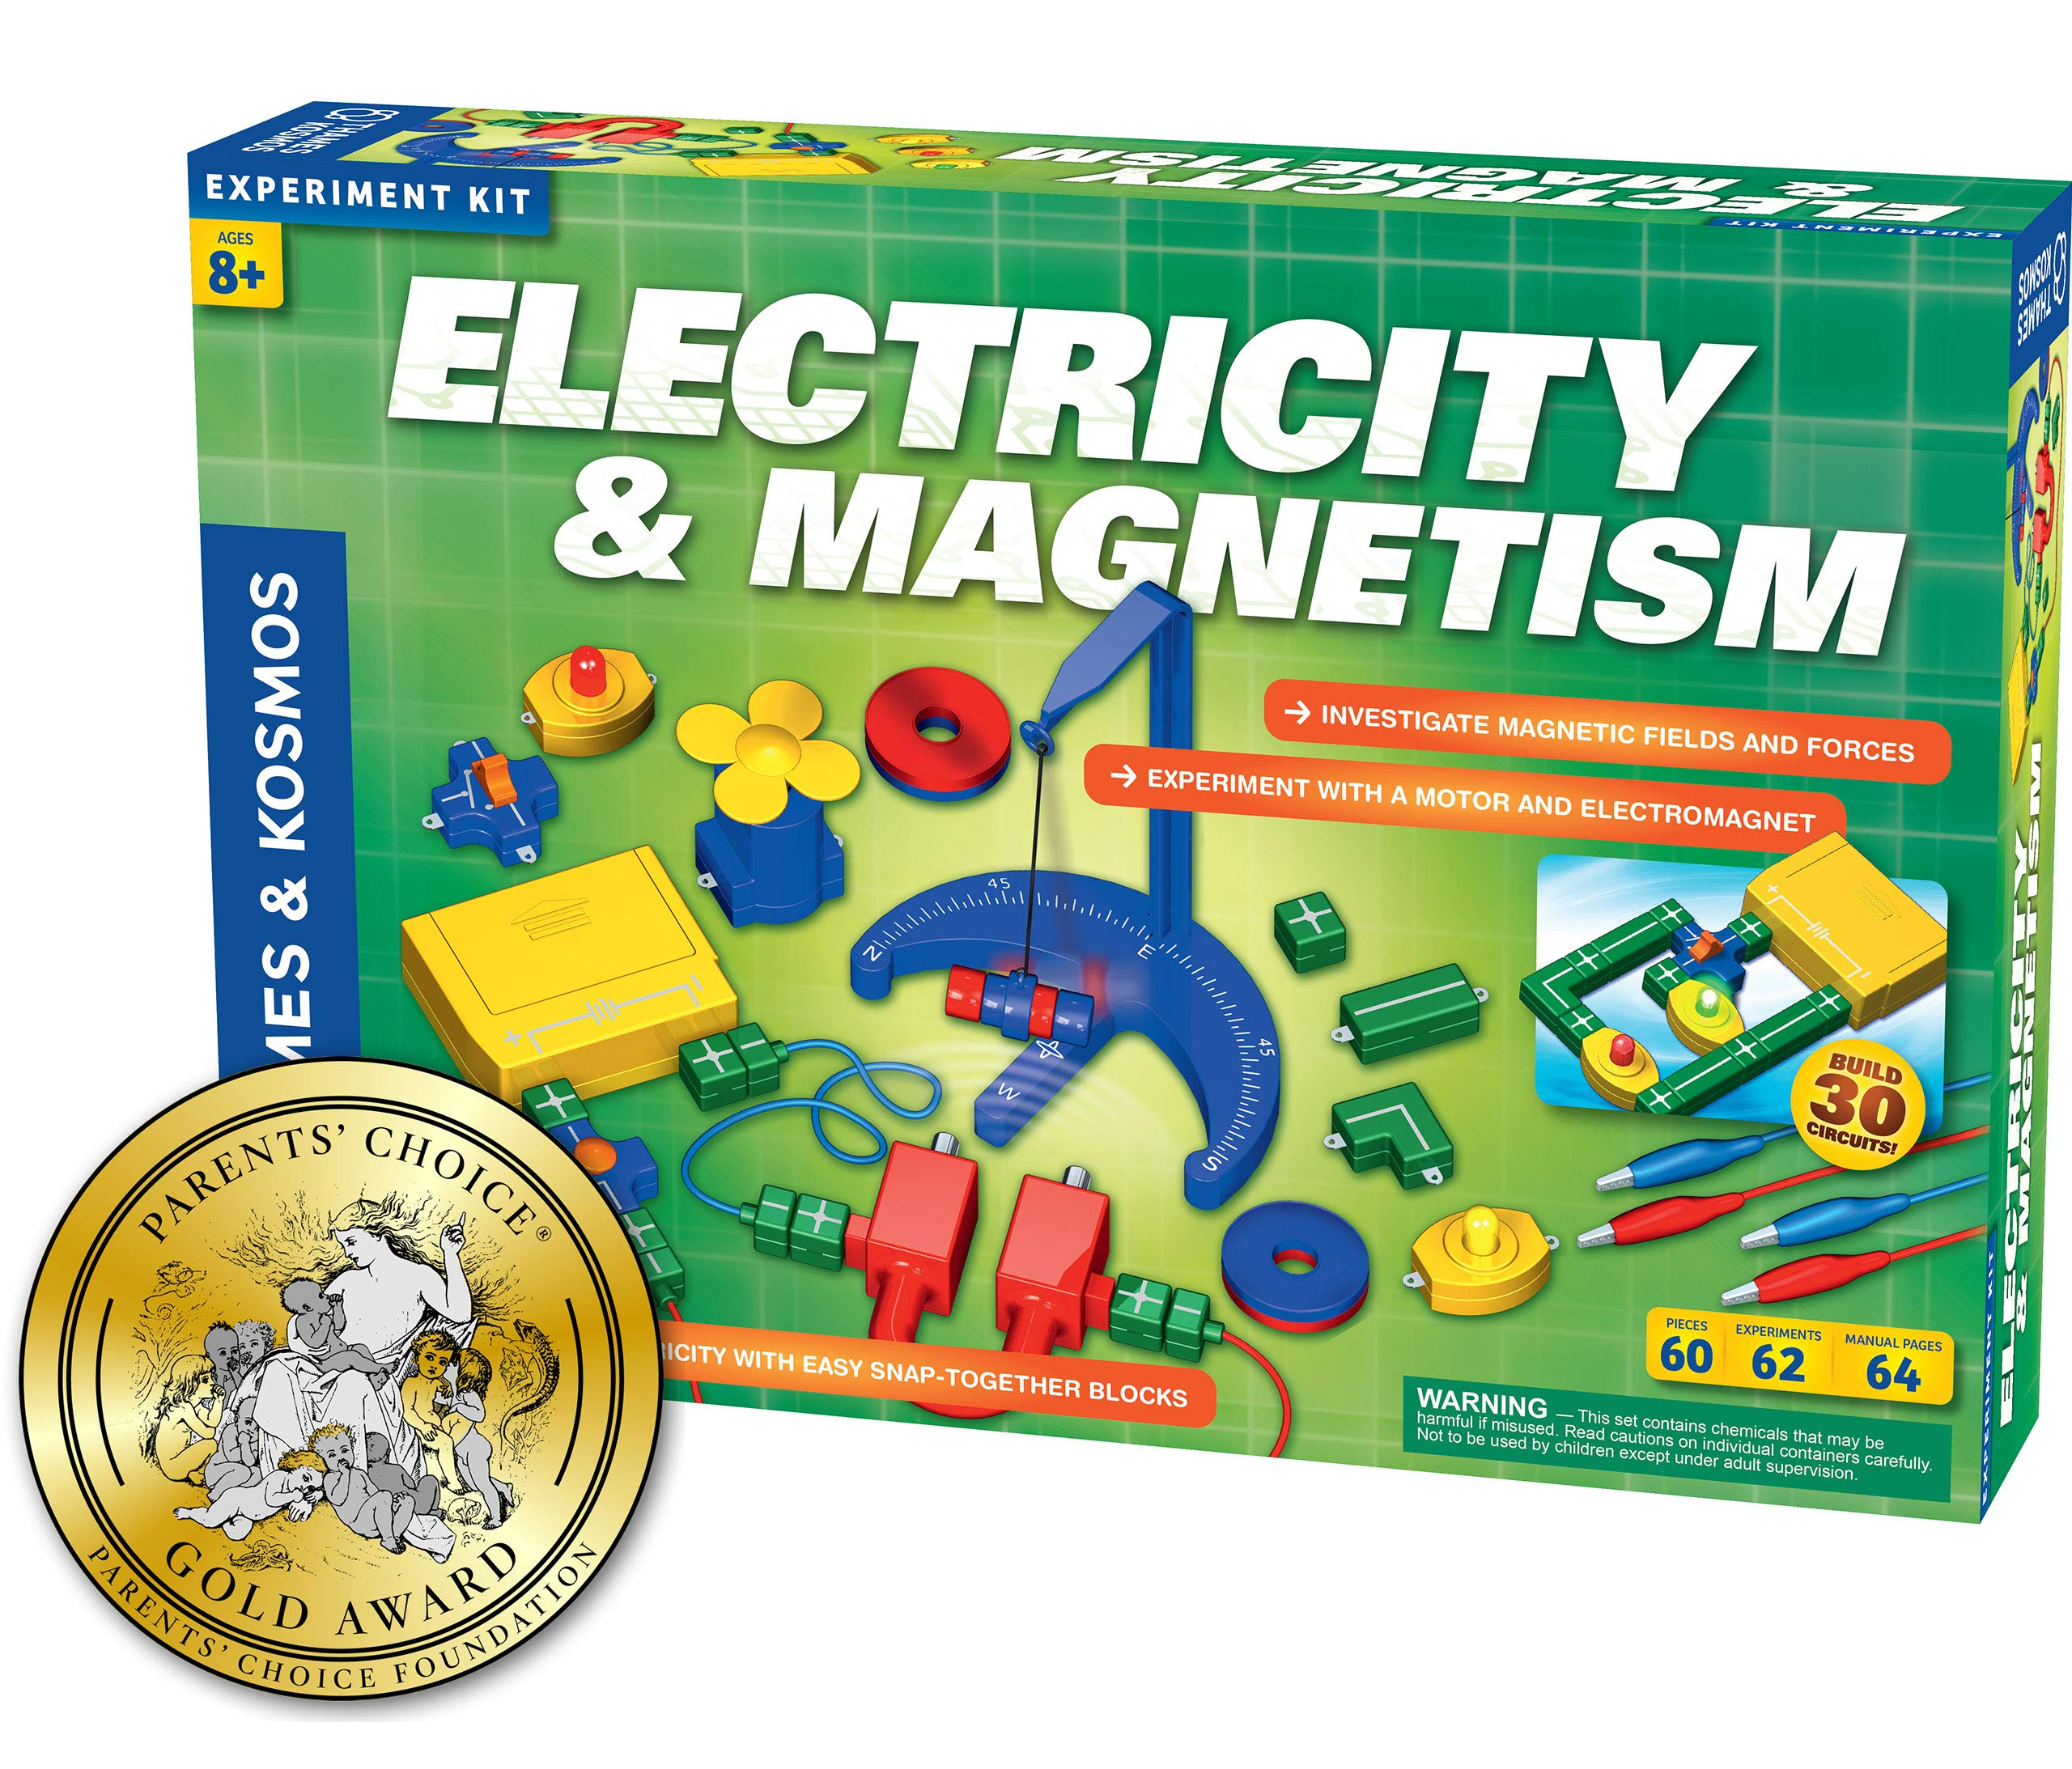 Thames & Kosmos Electricity & Magnetism Science Kit   62 Safe Experiments Investigating Magnetic Fields & Forces for Ages 8+   Assemble Electric Circuits with Easy Snap-Together Blocks by Thames & Kosmos